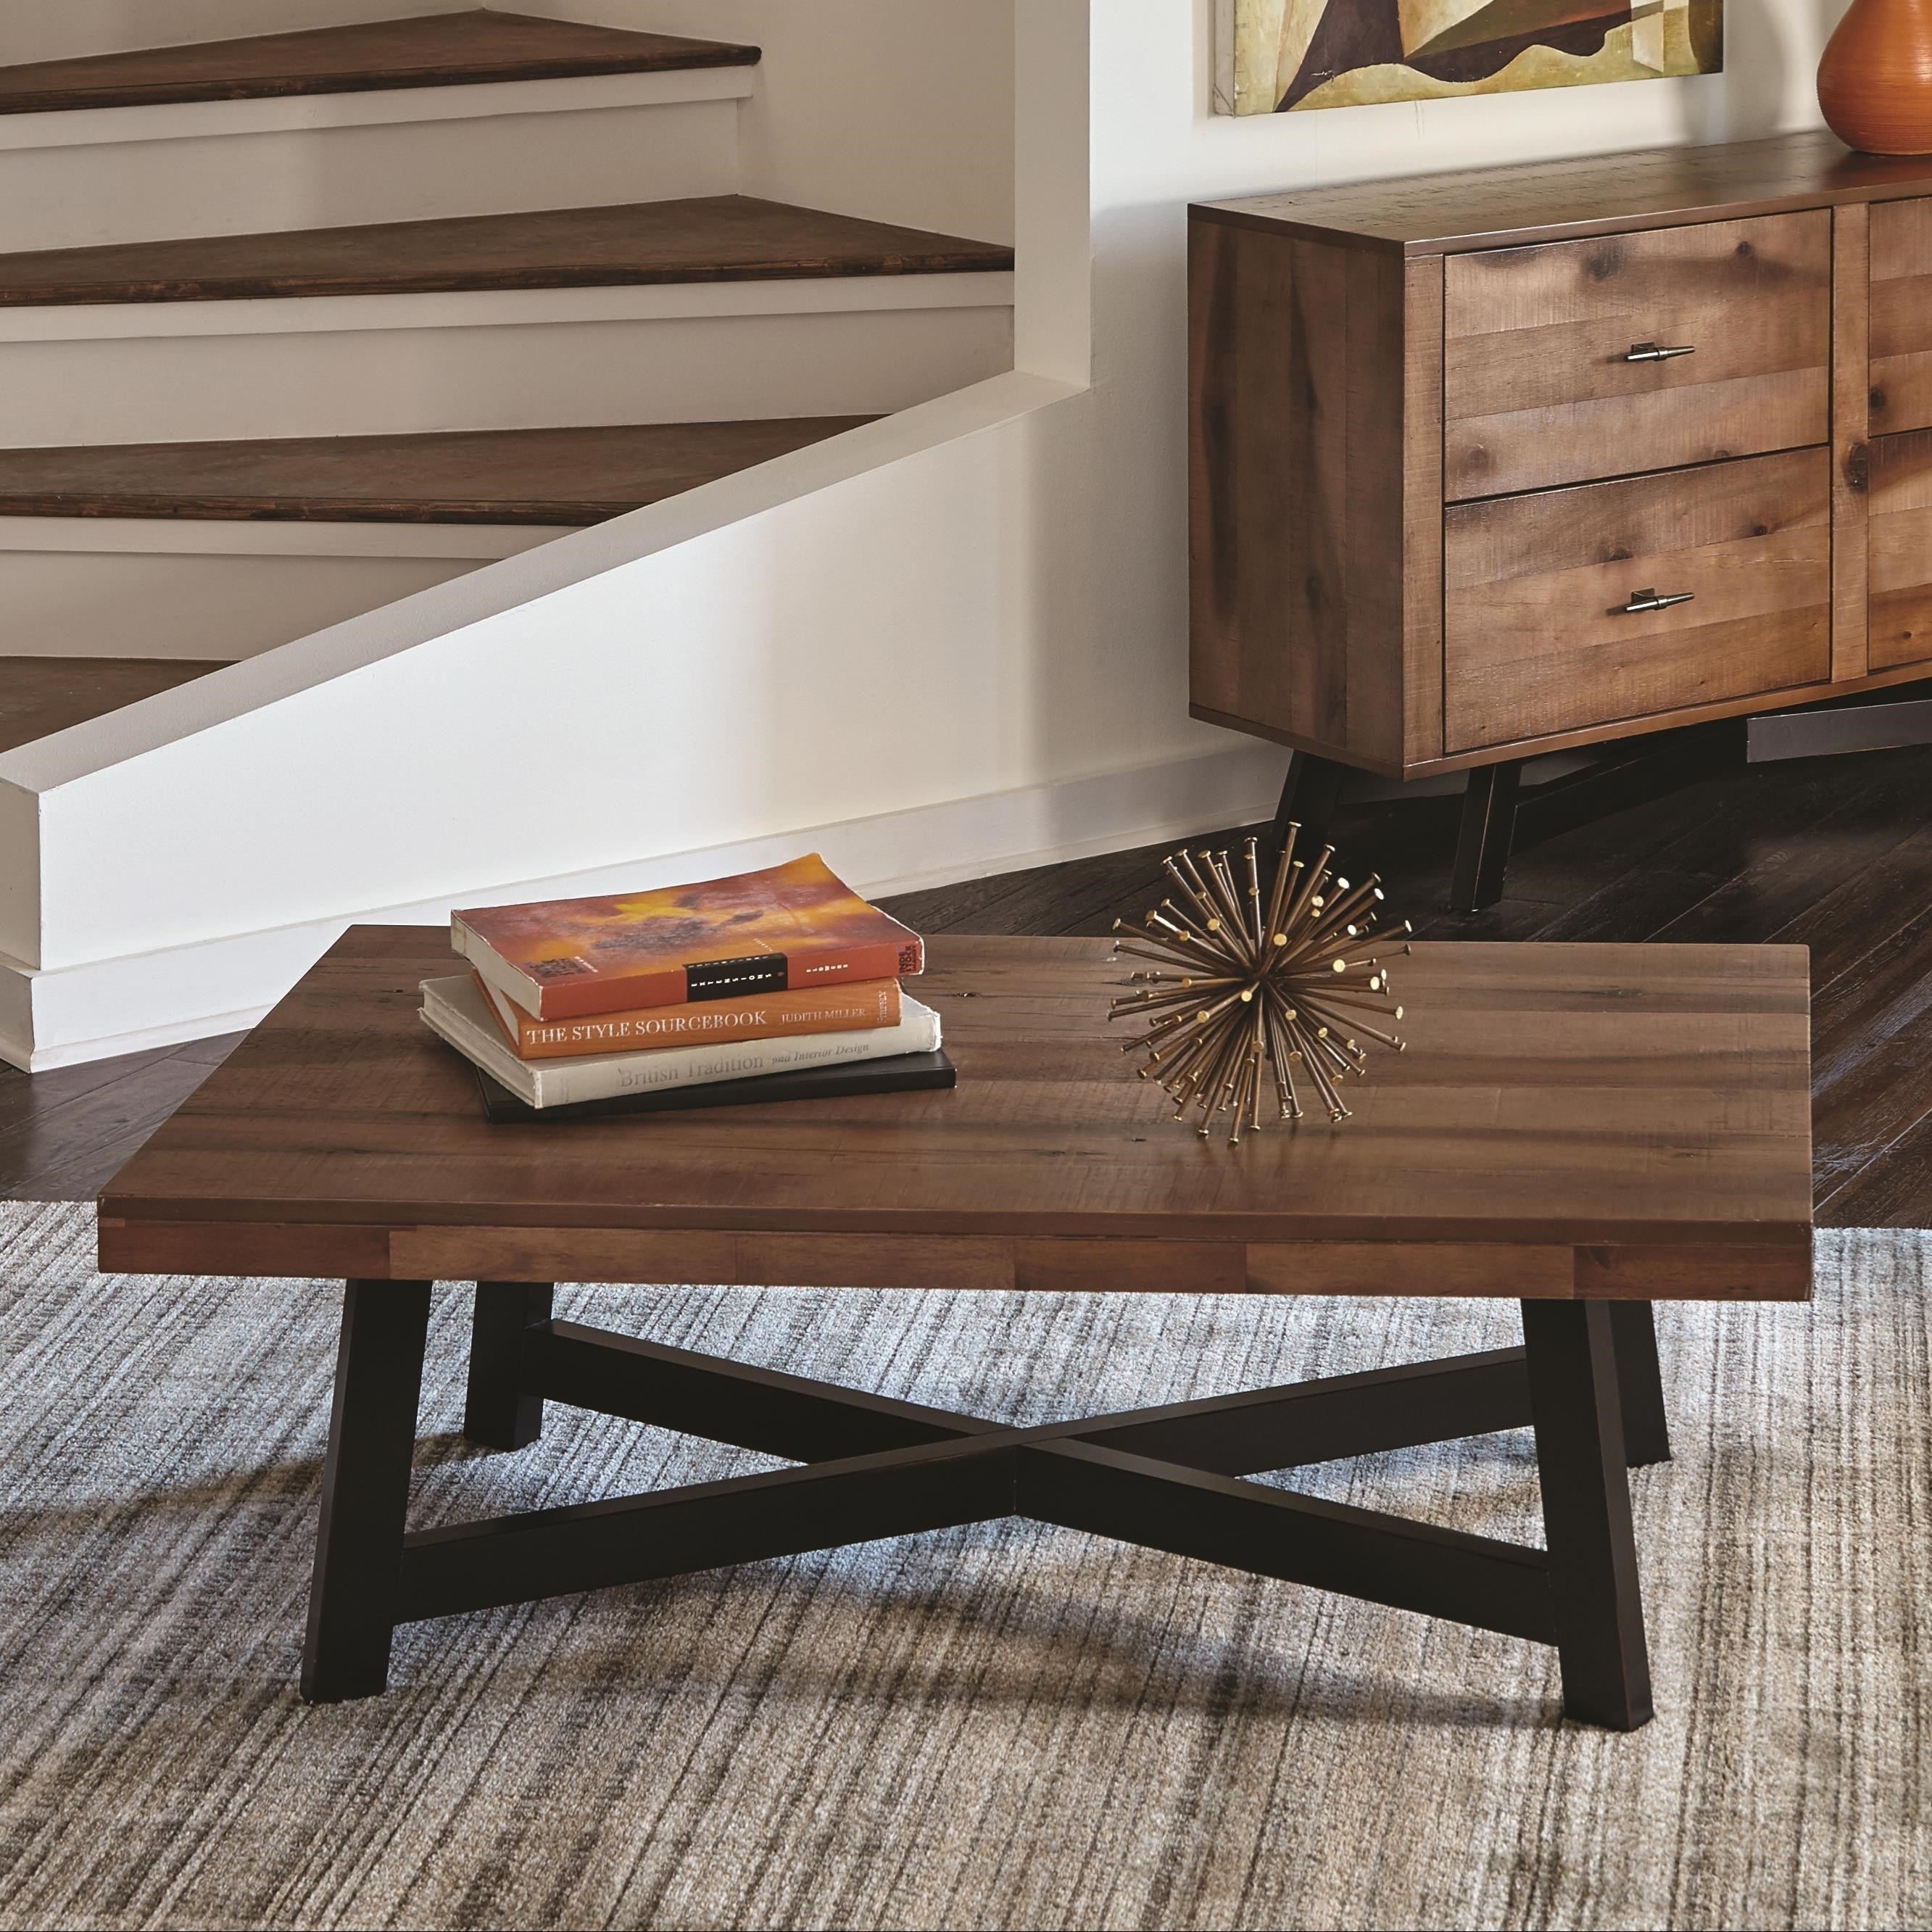 Keen Coffee Table, Batik | Bana Home Decors & Gifts Regarding Batik Coffee Tables (Gallery 5 of 30)